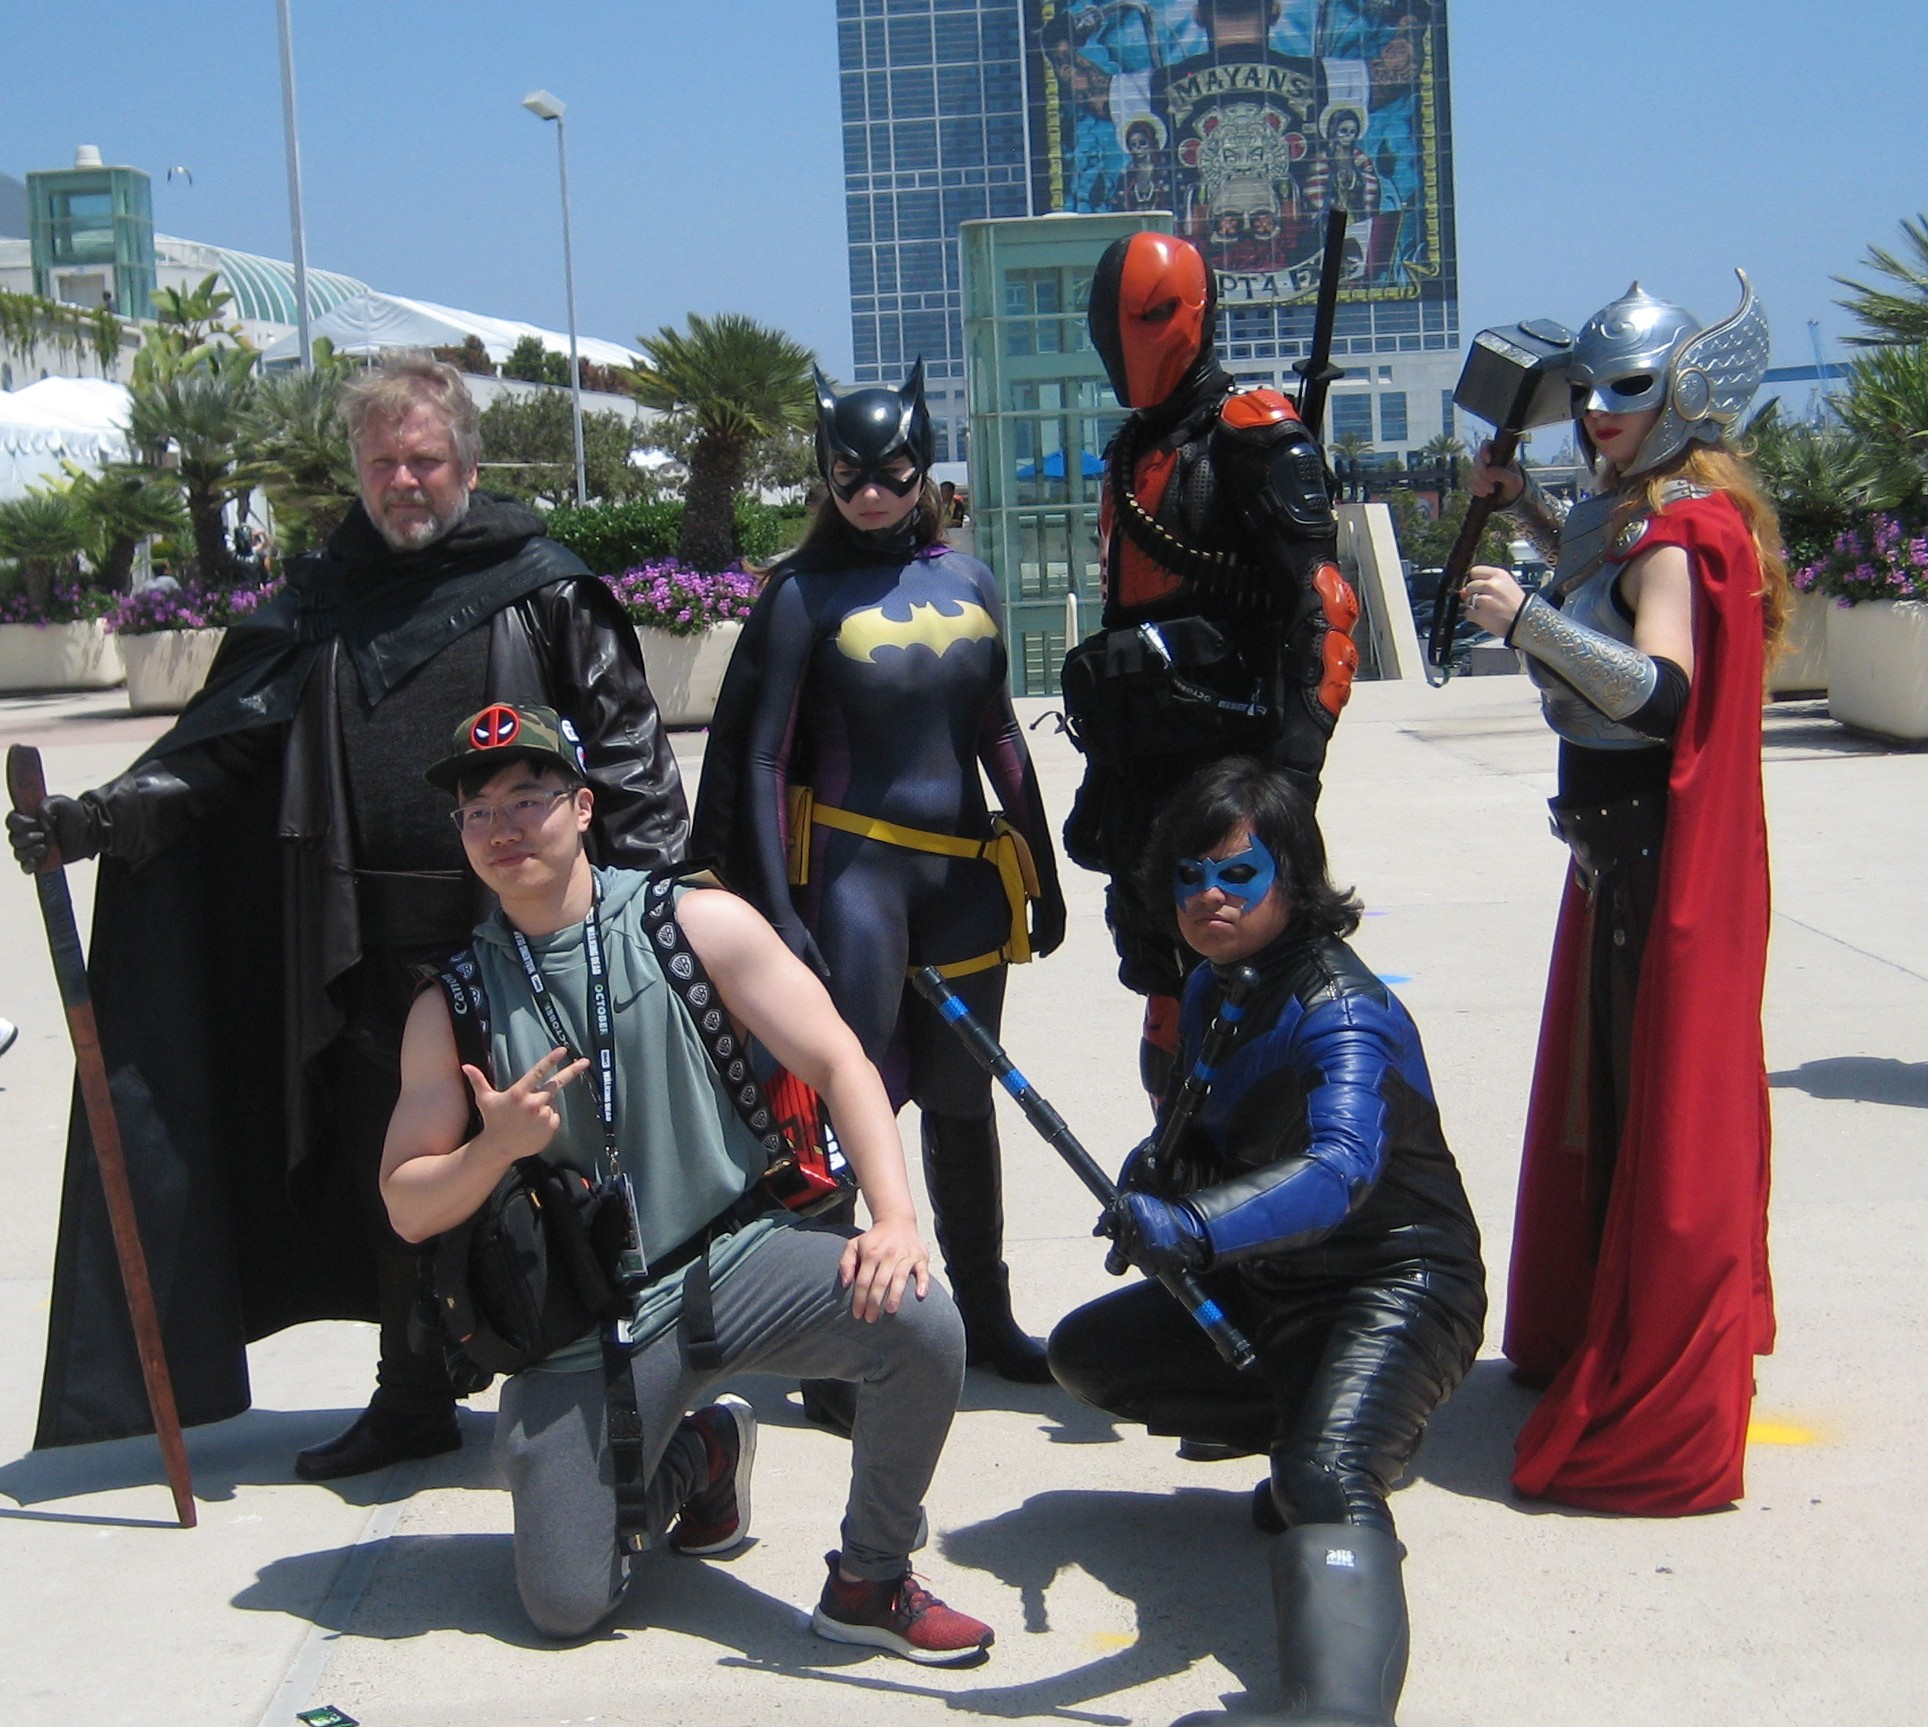 Free Comic Book Day San Diego: Cosplay At Comic-Con